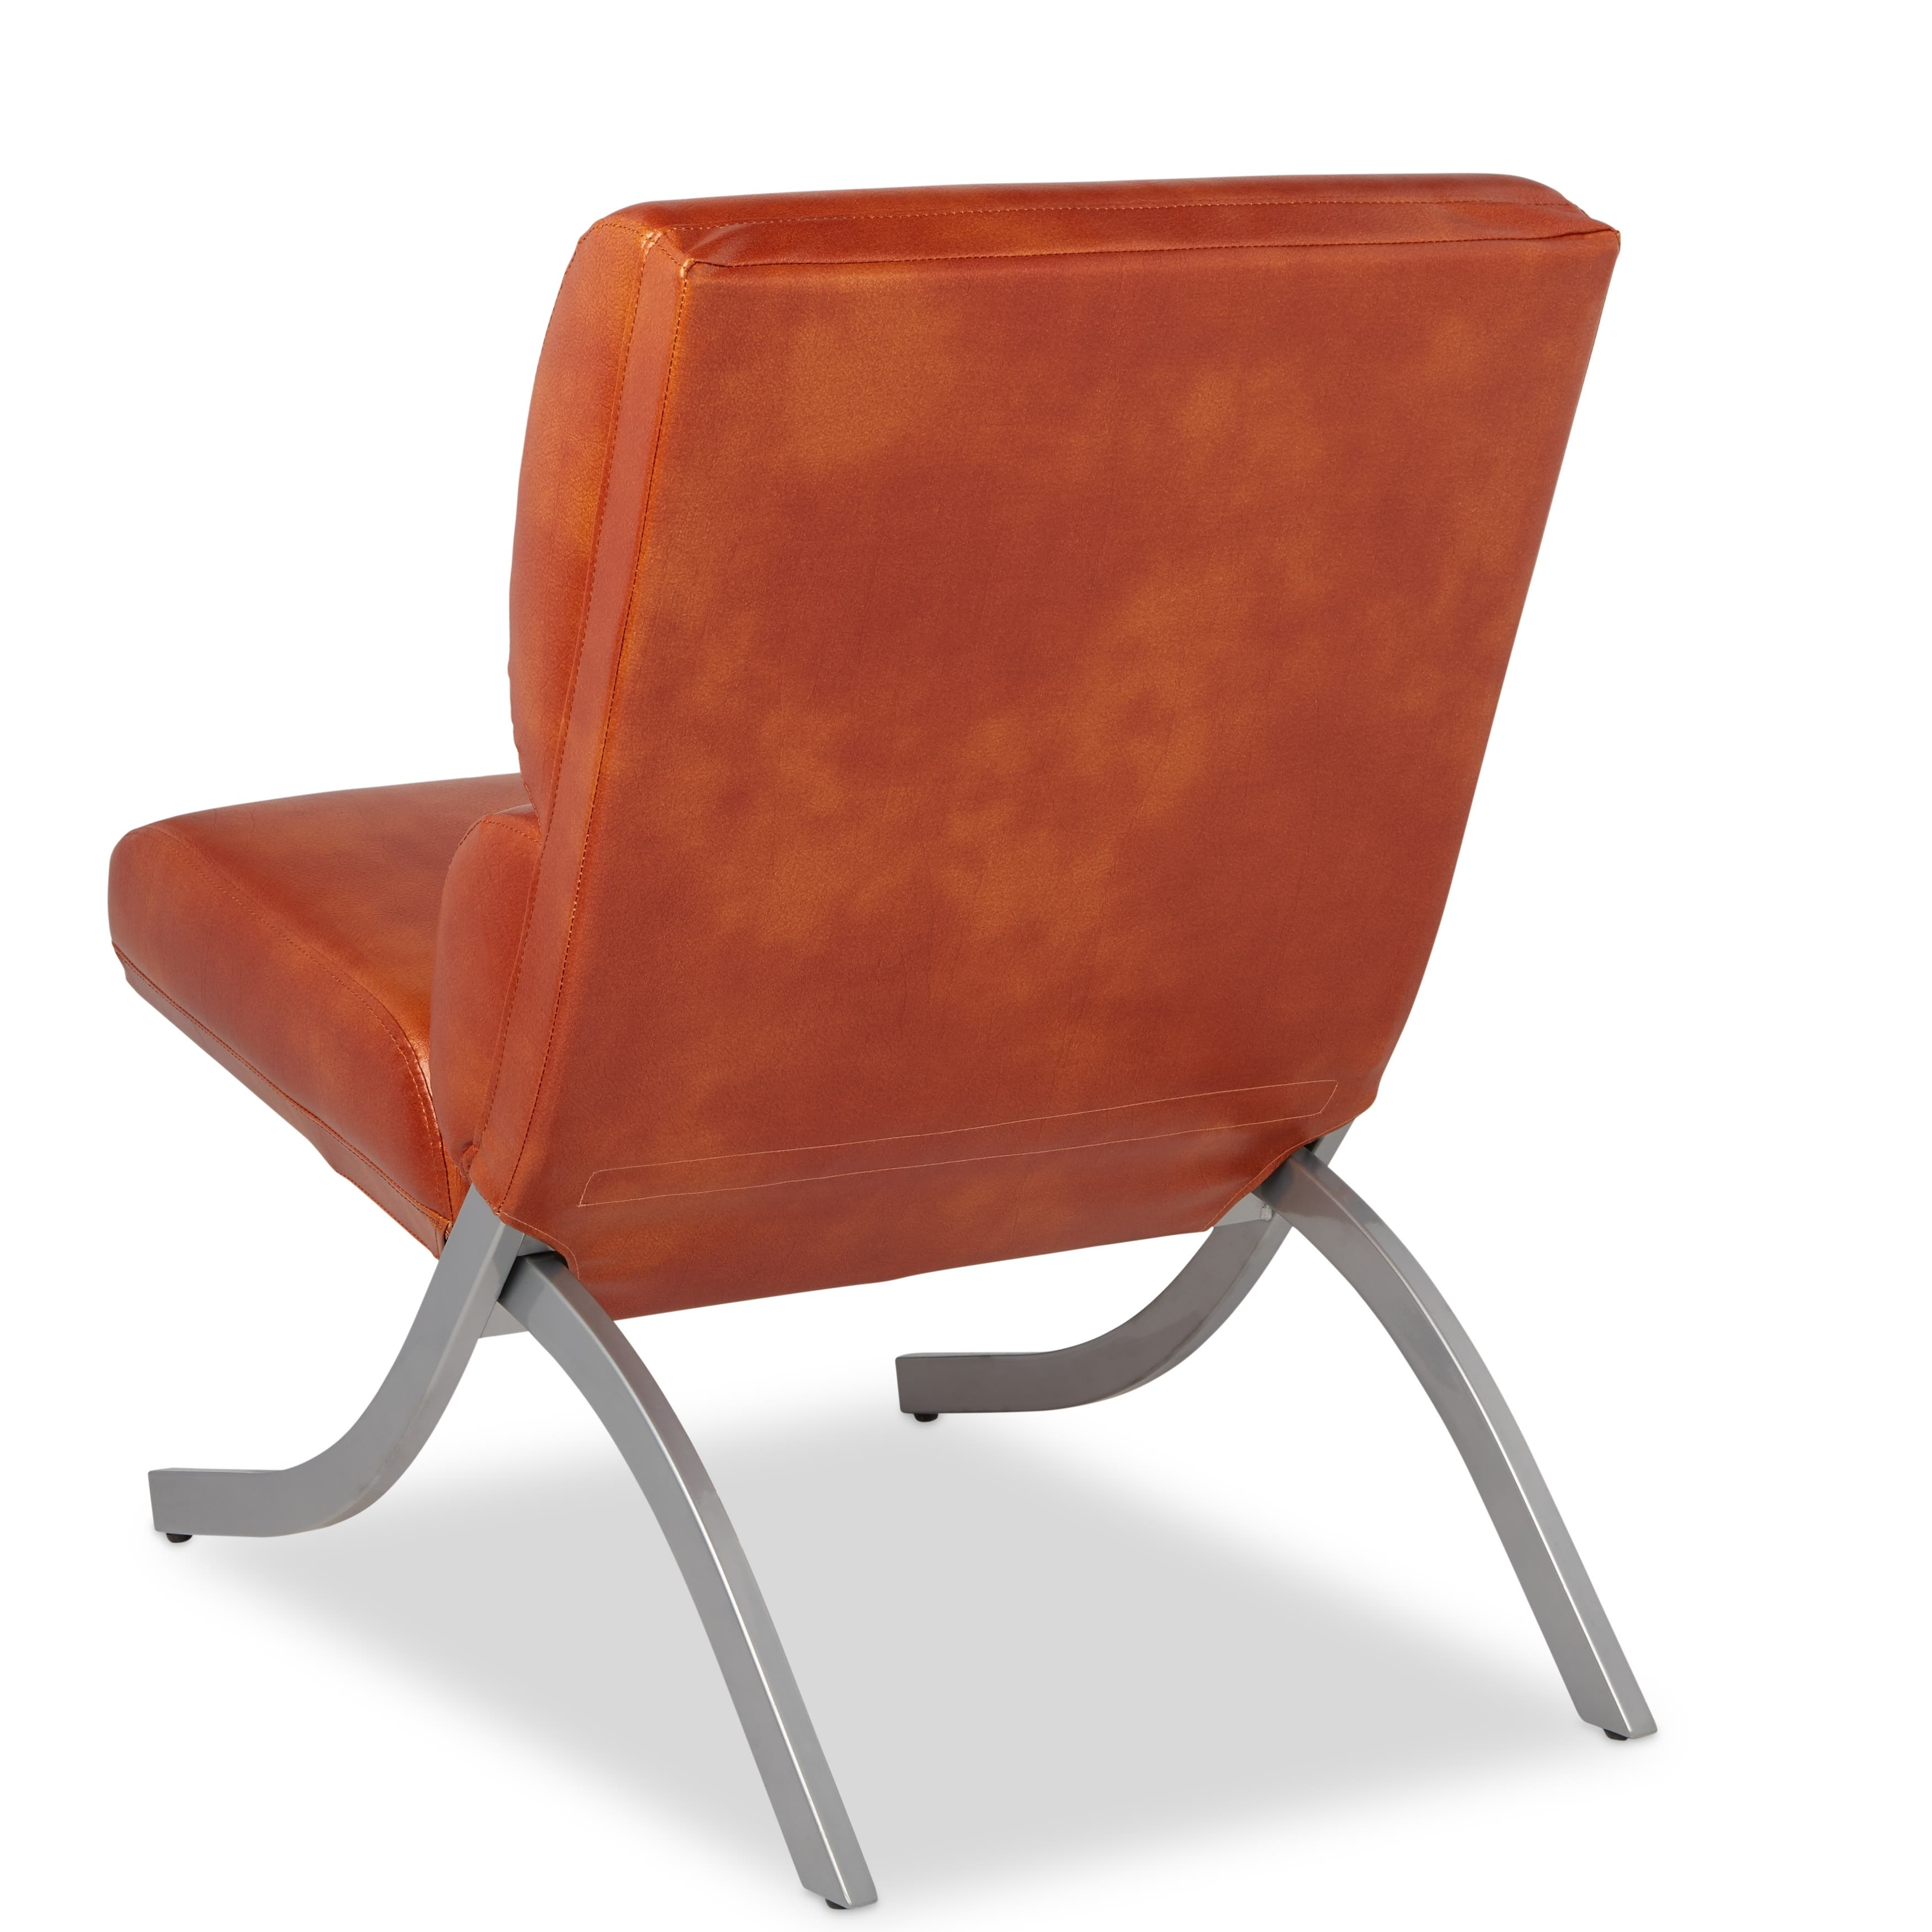 Rialto Rust Faux Leather Chair: Buy Living Room Chairs Online At Overstock